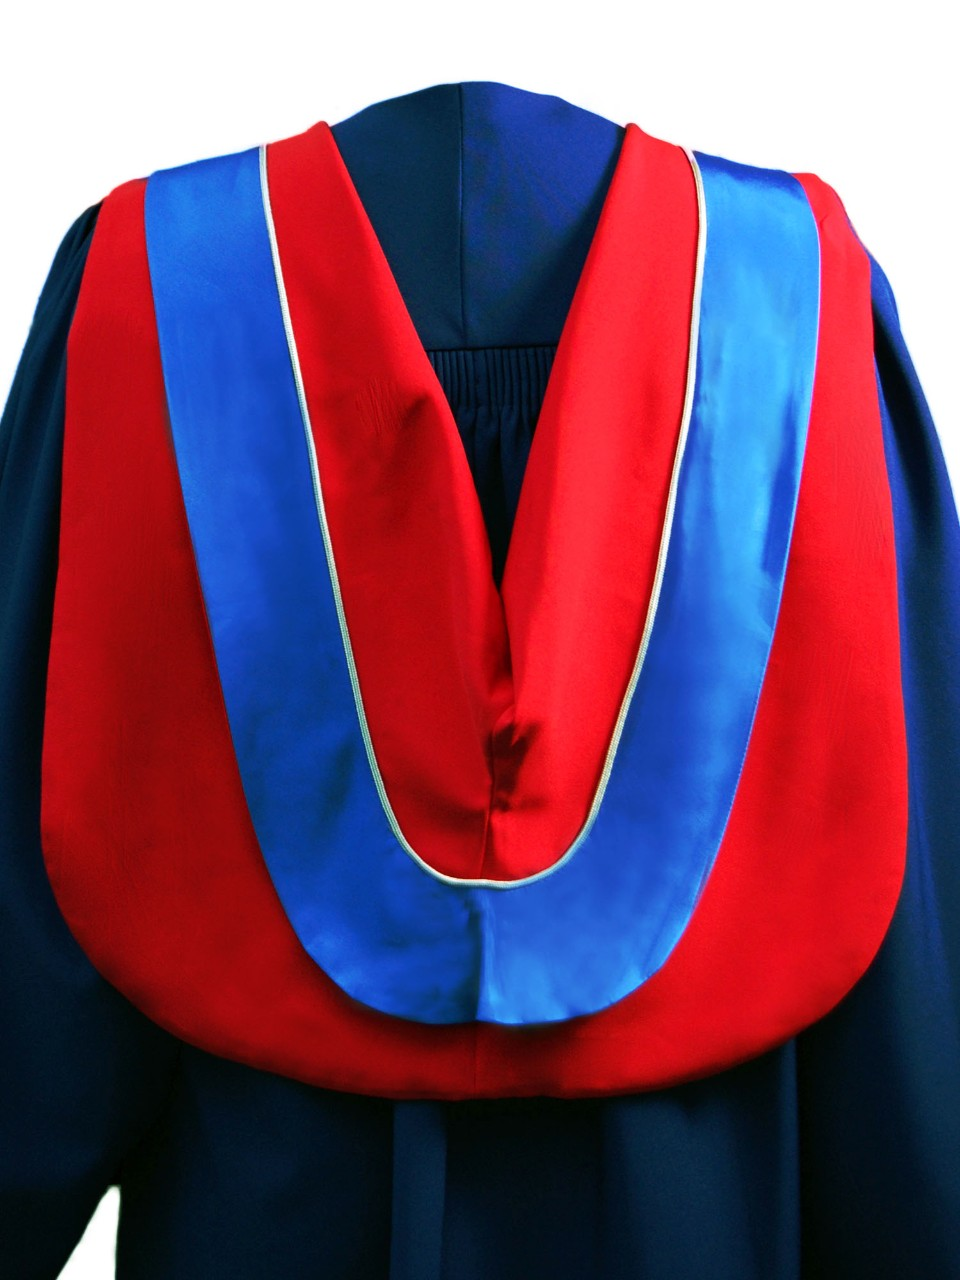 The Master of Business Administration hood is red with wide blue border and grey cording.